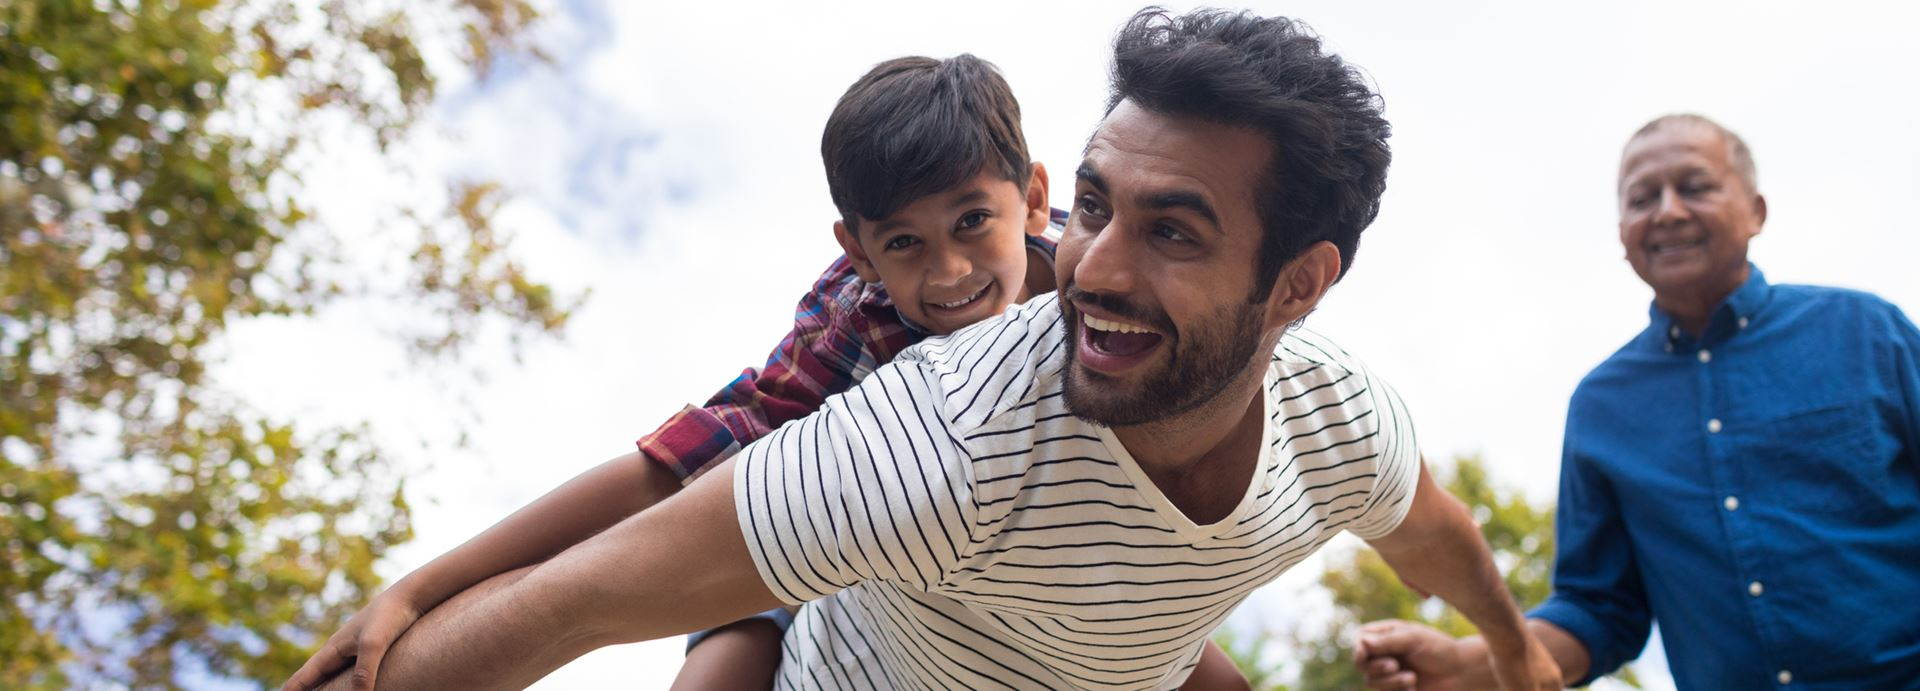 What is fostering? | About fostering | Active Care Solutions